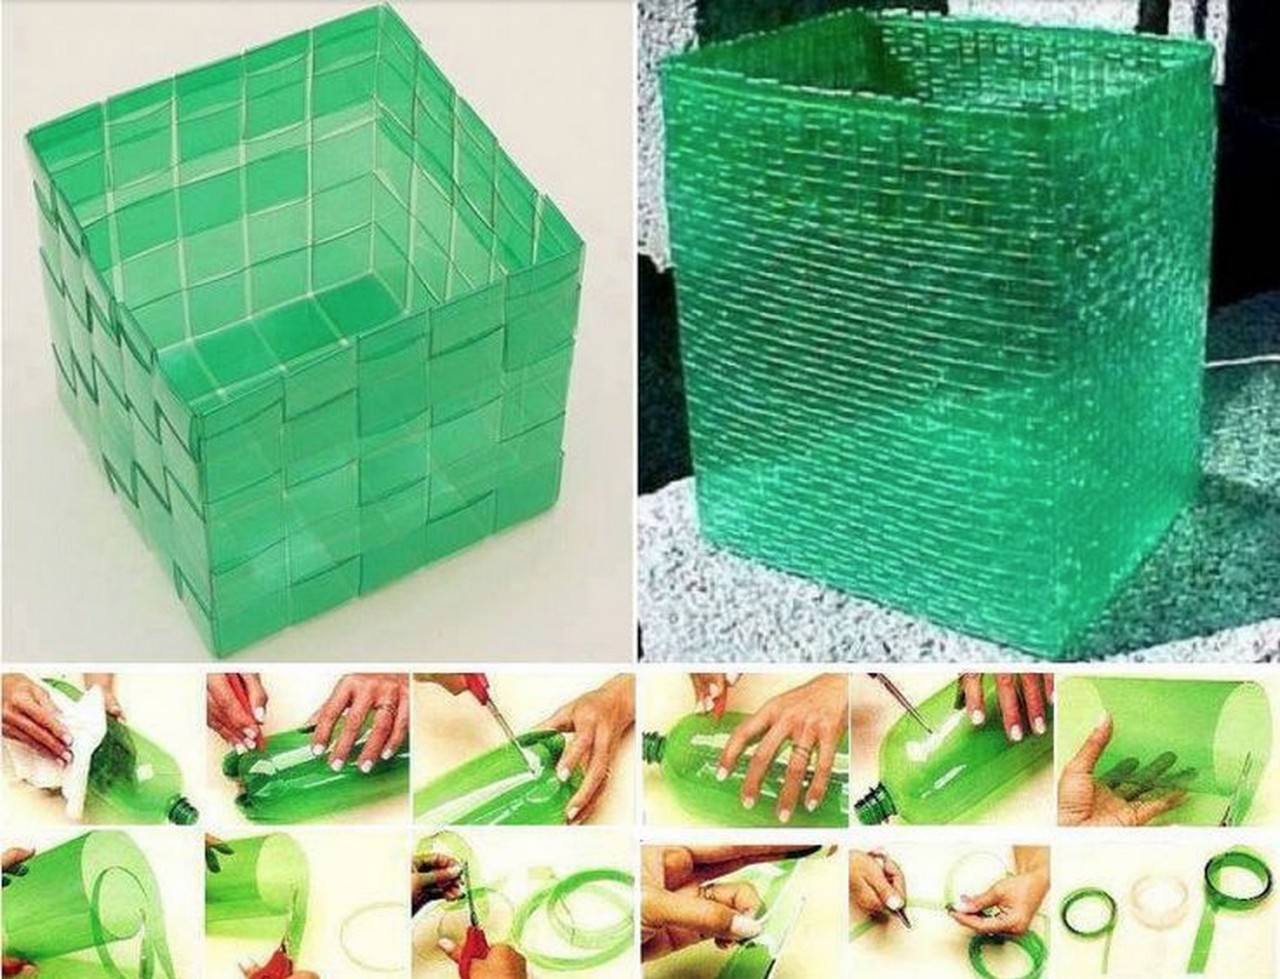 recycled things made from plastic